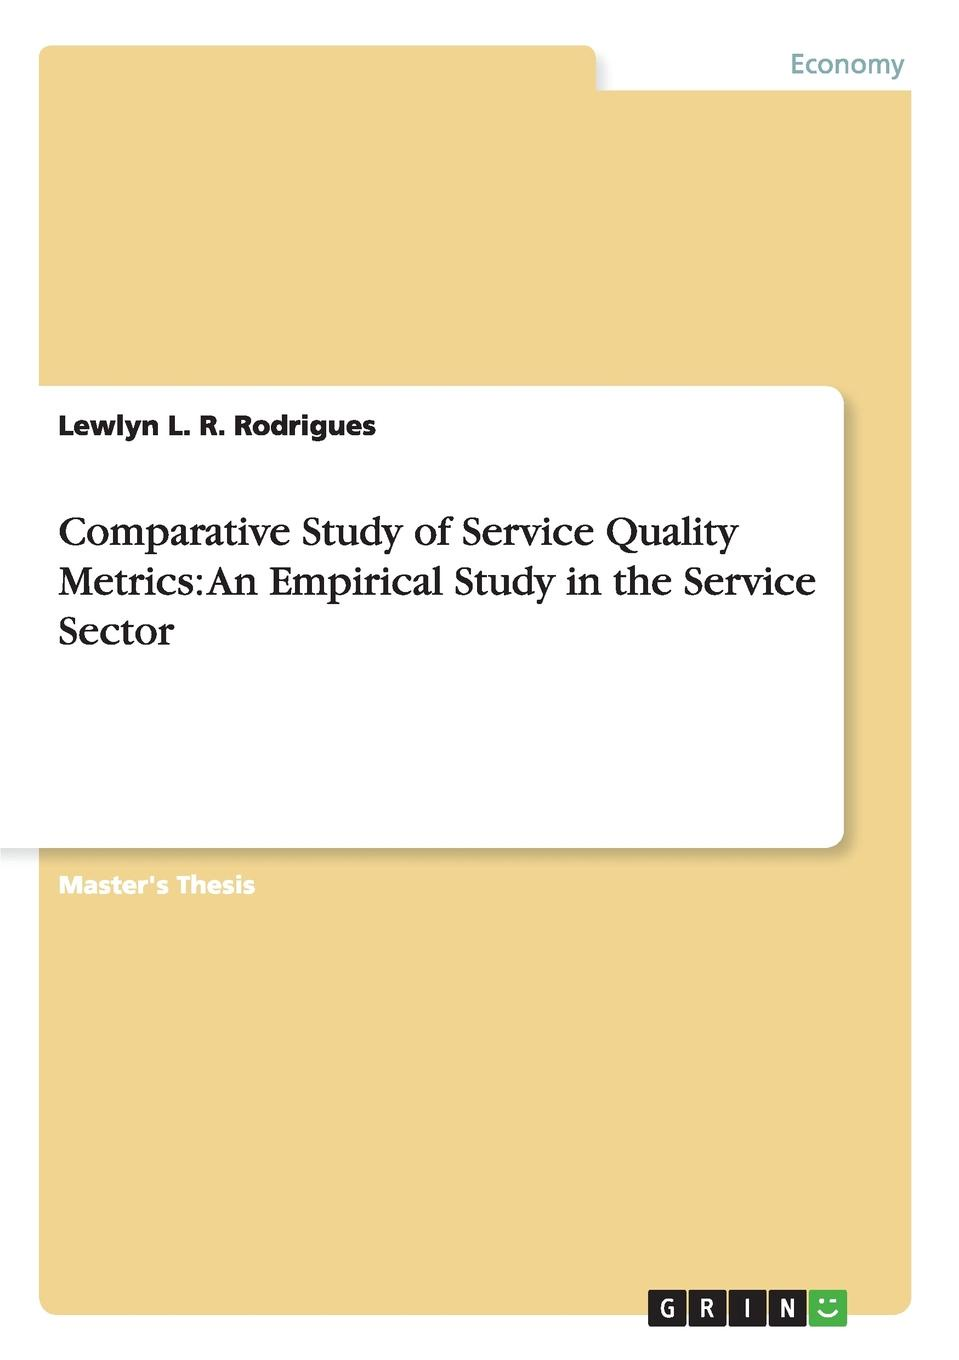 Lewlyn L. R. Rodrigues Comparative Study of Service Quality Metrics. An Empirical Study in the Service Sector 2016 the new recommendation of the two sides of the two sides of the pineapple service women s clothing split body and european